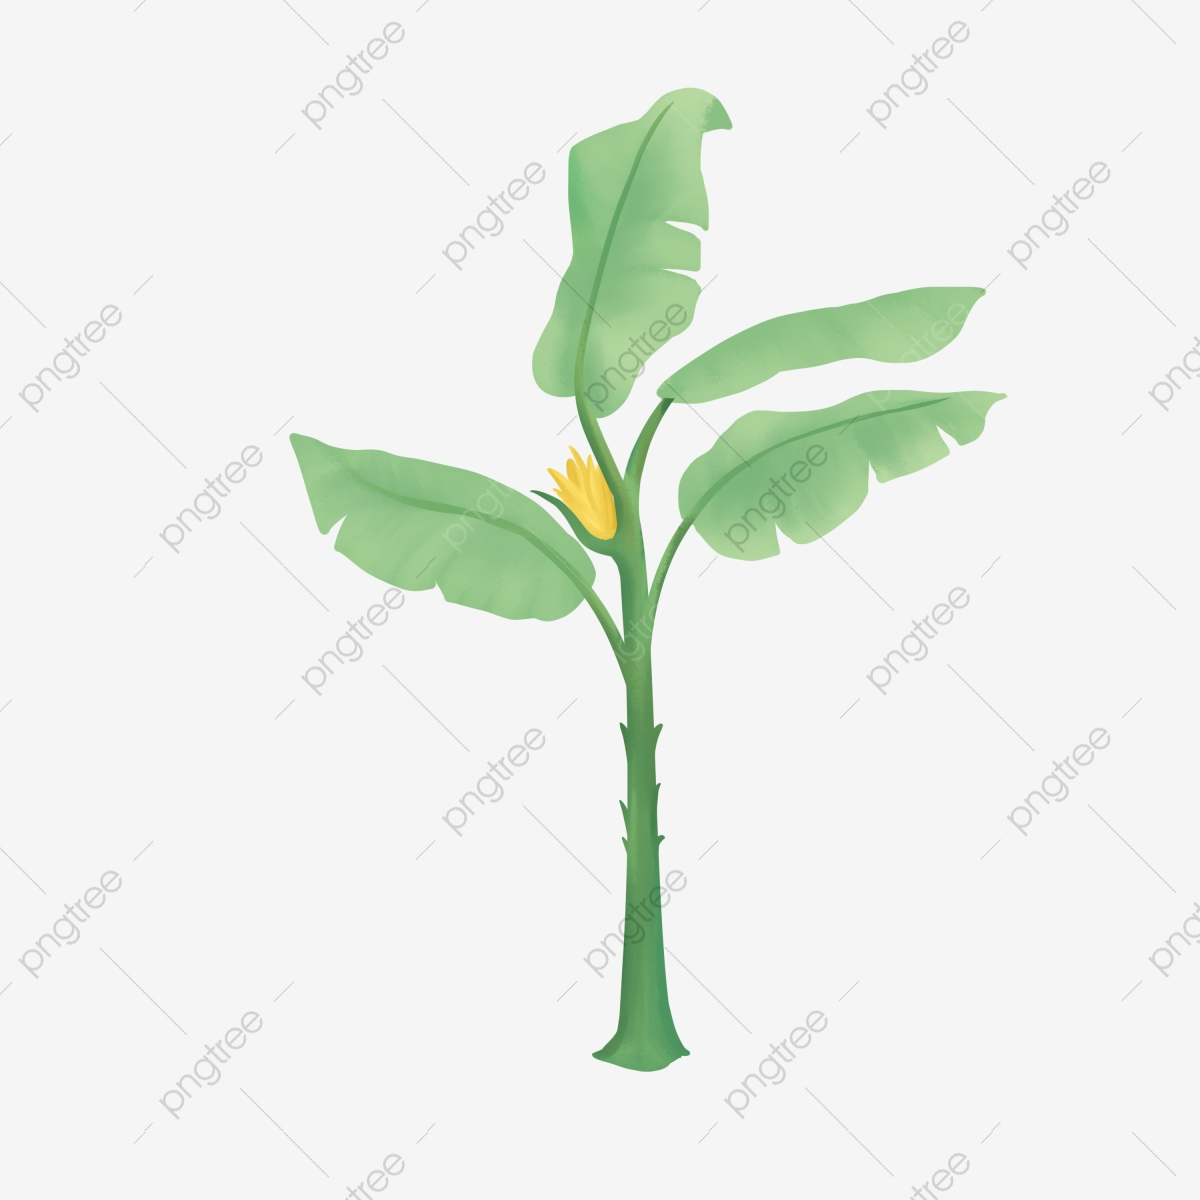 Fresh Plantain Tree Plant Illustration Fresh Banana Tree Banana Leaf Png Transparent Clipart Image And Psd File For Free Download